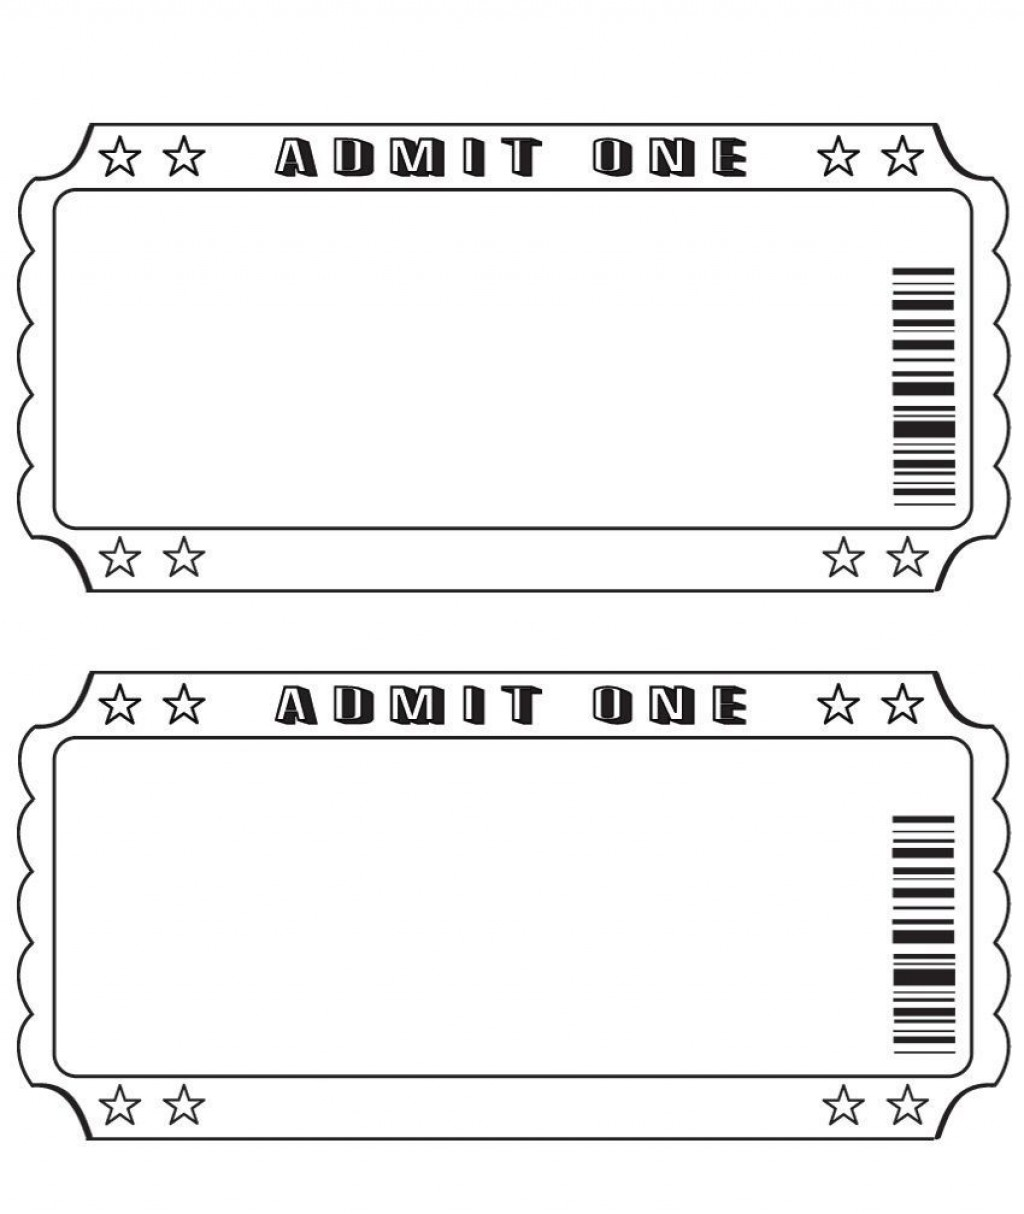 003 Shocking Free Printable Ticket Template Highest Quality  Editable Airline Christma For GiftLarge